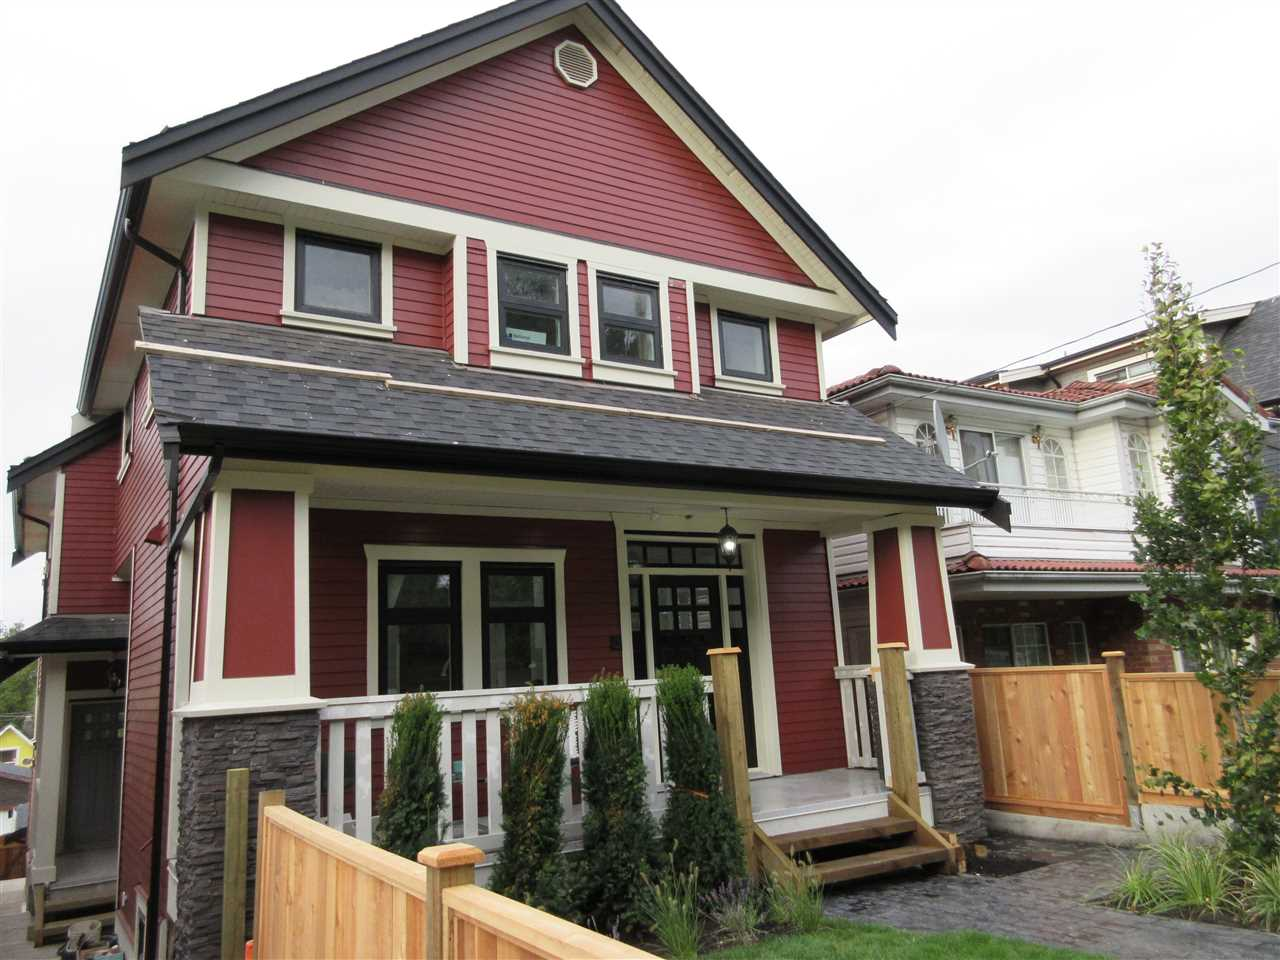 Main Photo: 1645 E 14TH Avenue in Vancouver: Grandview VE House 1/2 Duplex for sale (Vancouver East)  : MLS® # R2126747